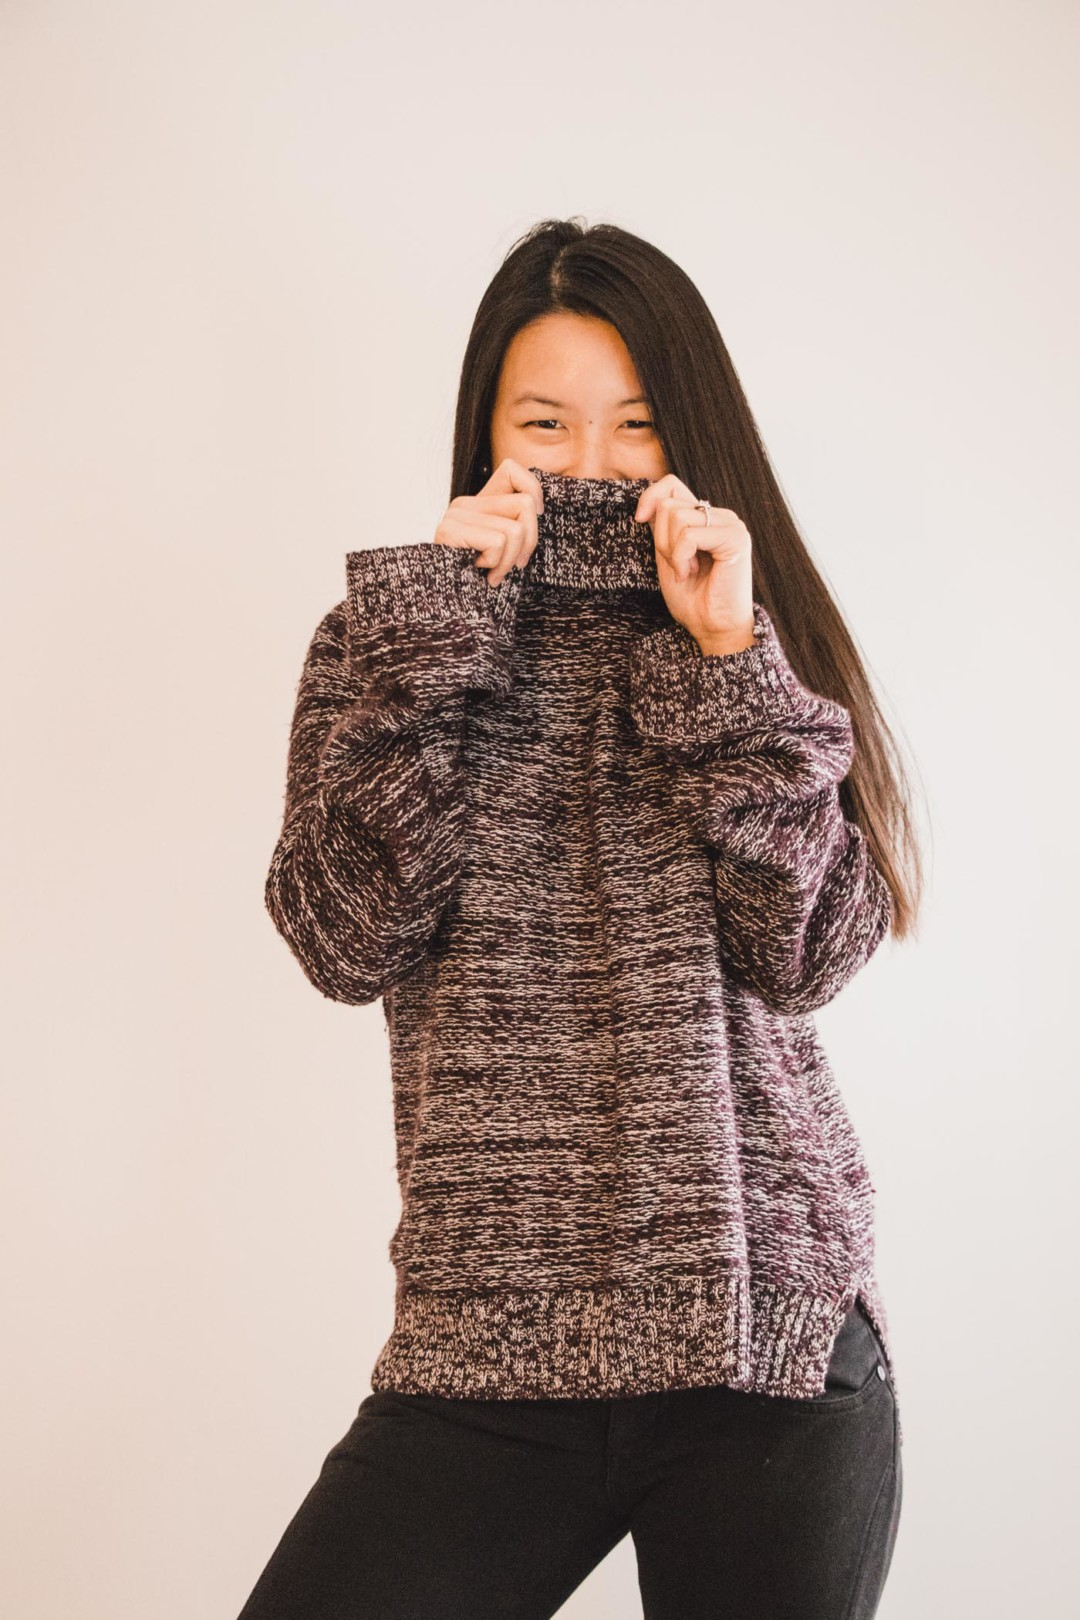 Classic Chunky Turtleneck Sweater from Hollister - Simply Lovebirds